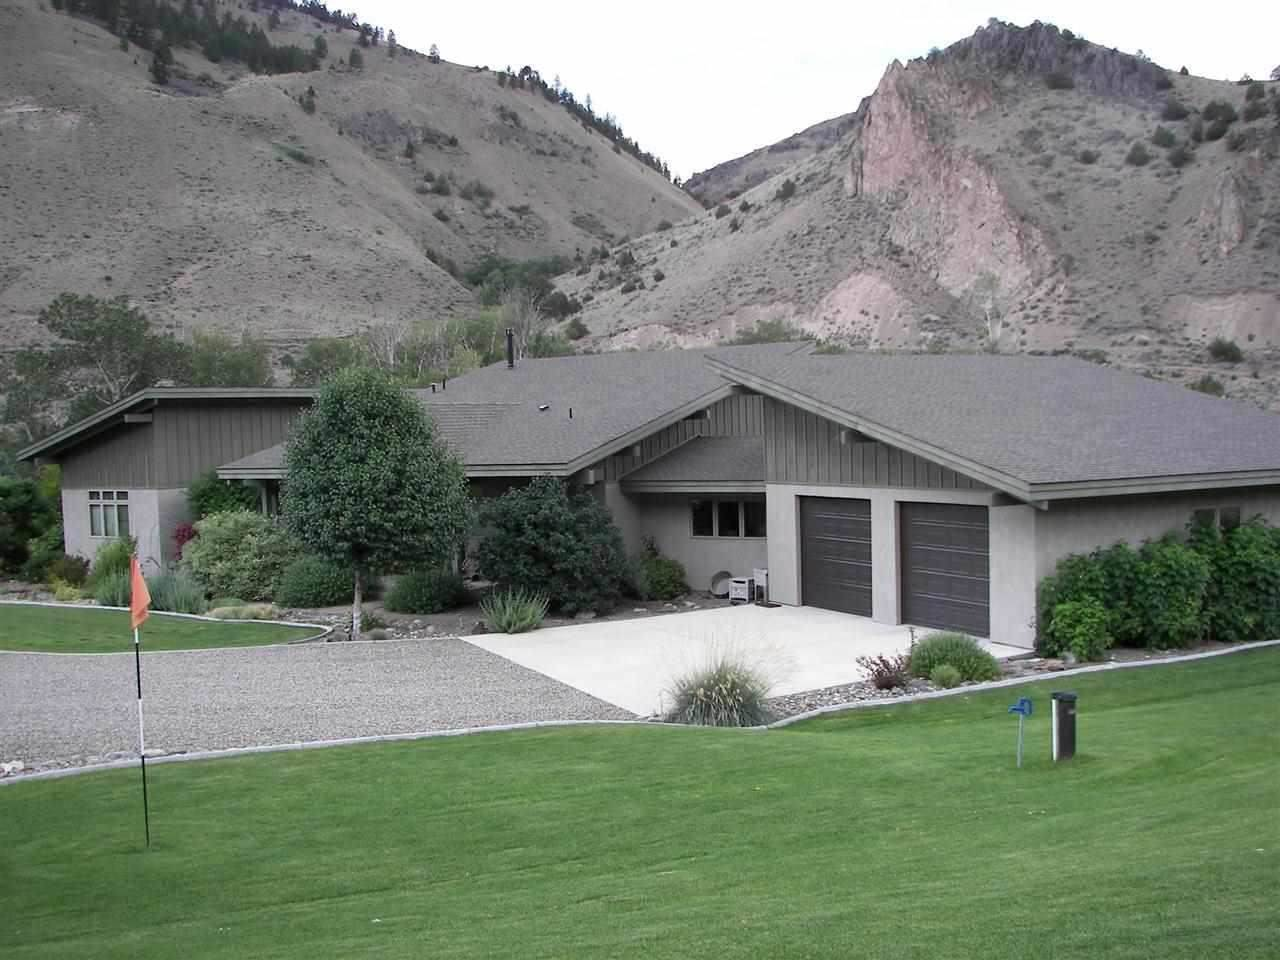 Single Family Home for Sale at 939 Hwy 93 South 939 Hwy 93 South Salmon, Idaho 83467